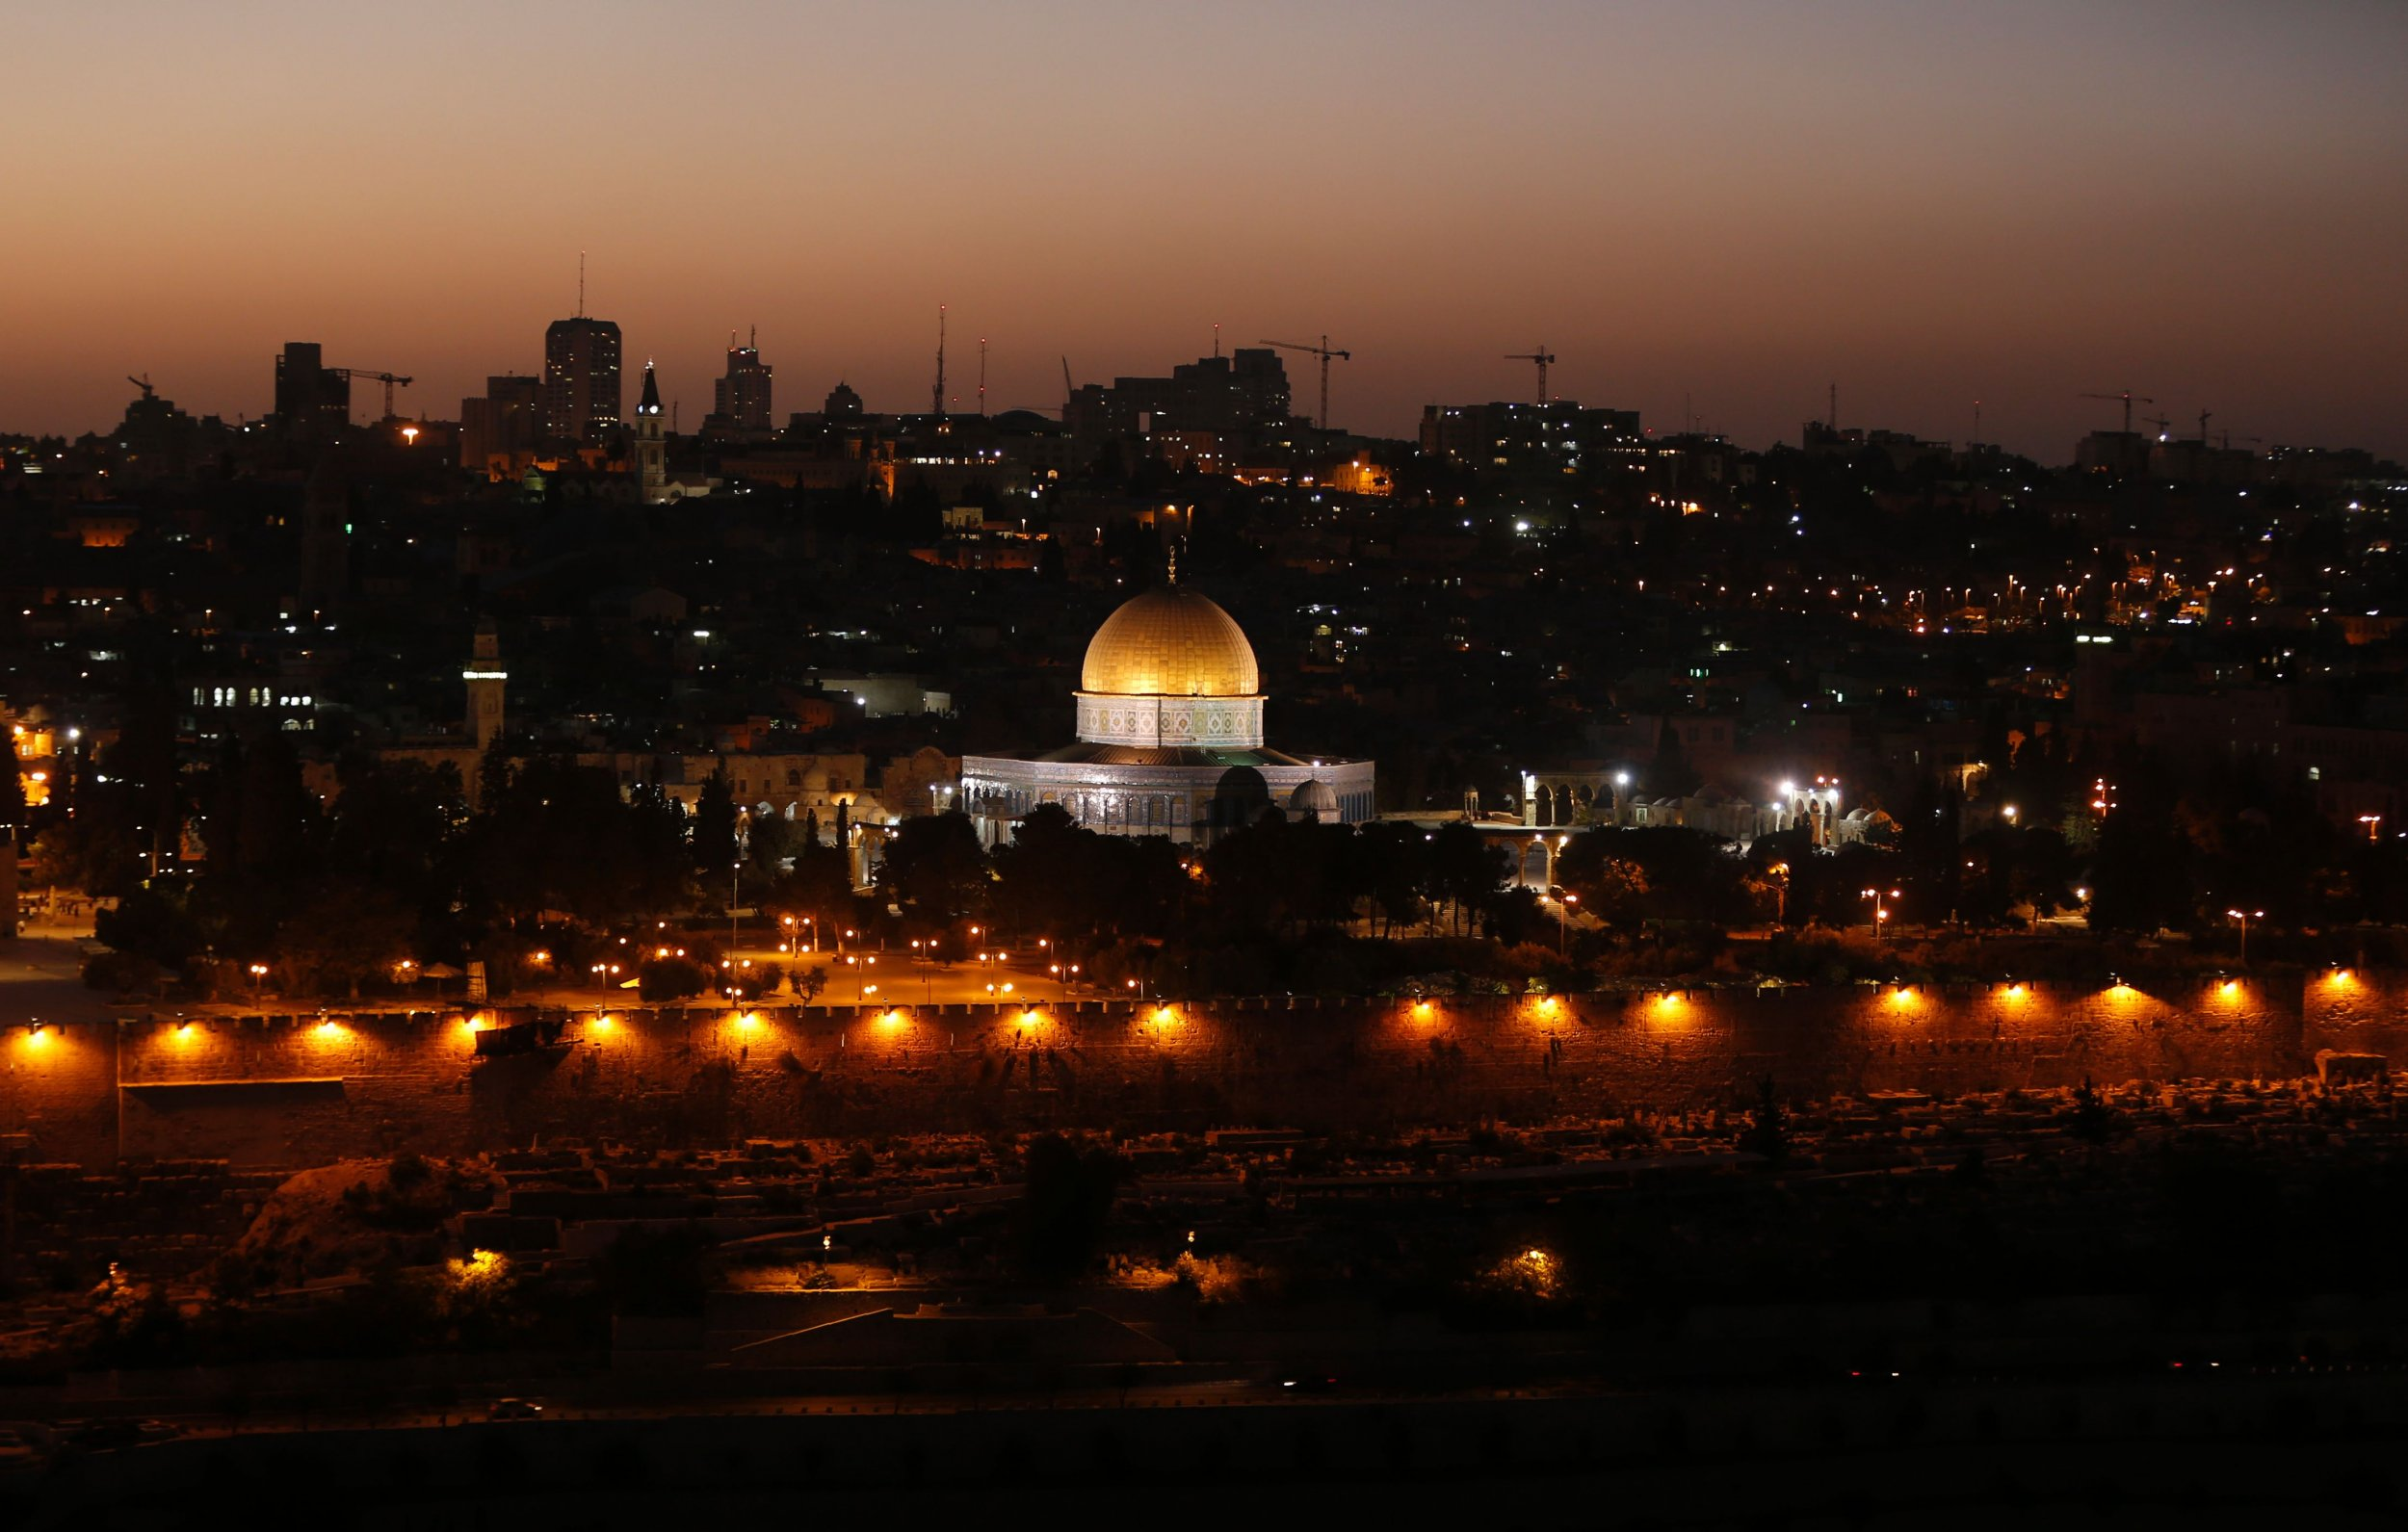 Jerusalem's Dome of the Rock